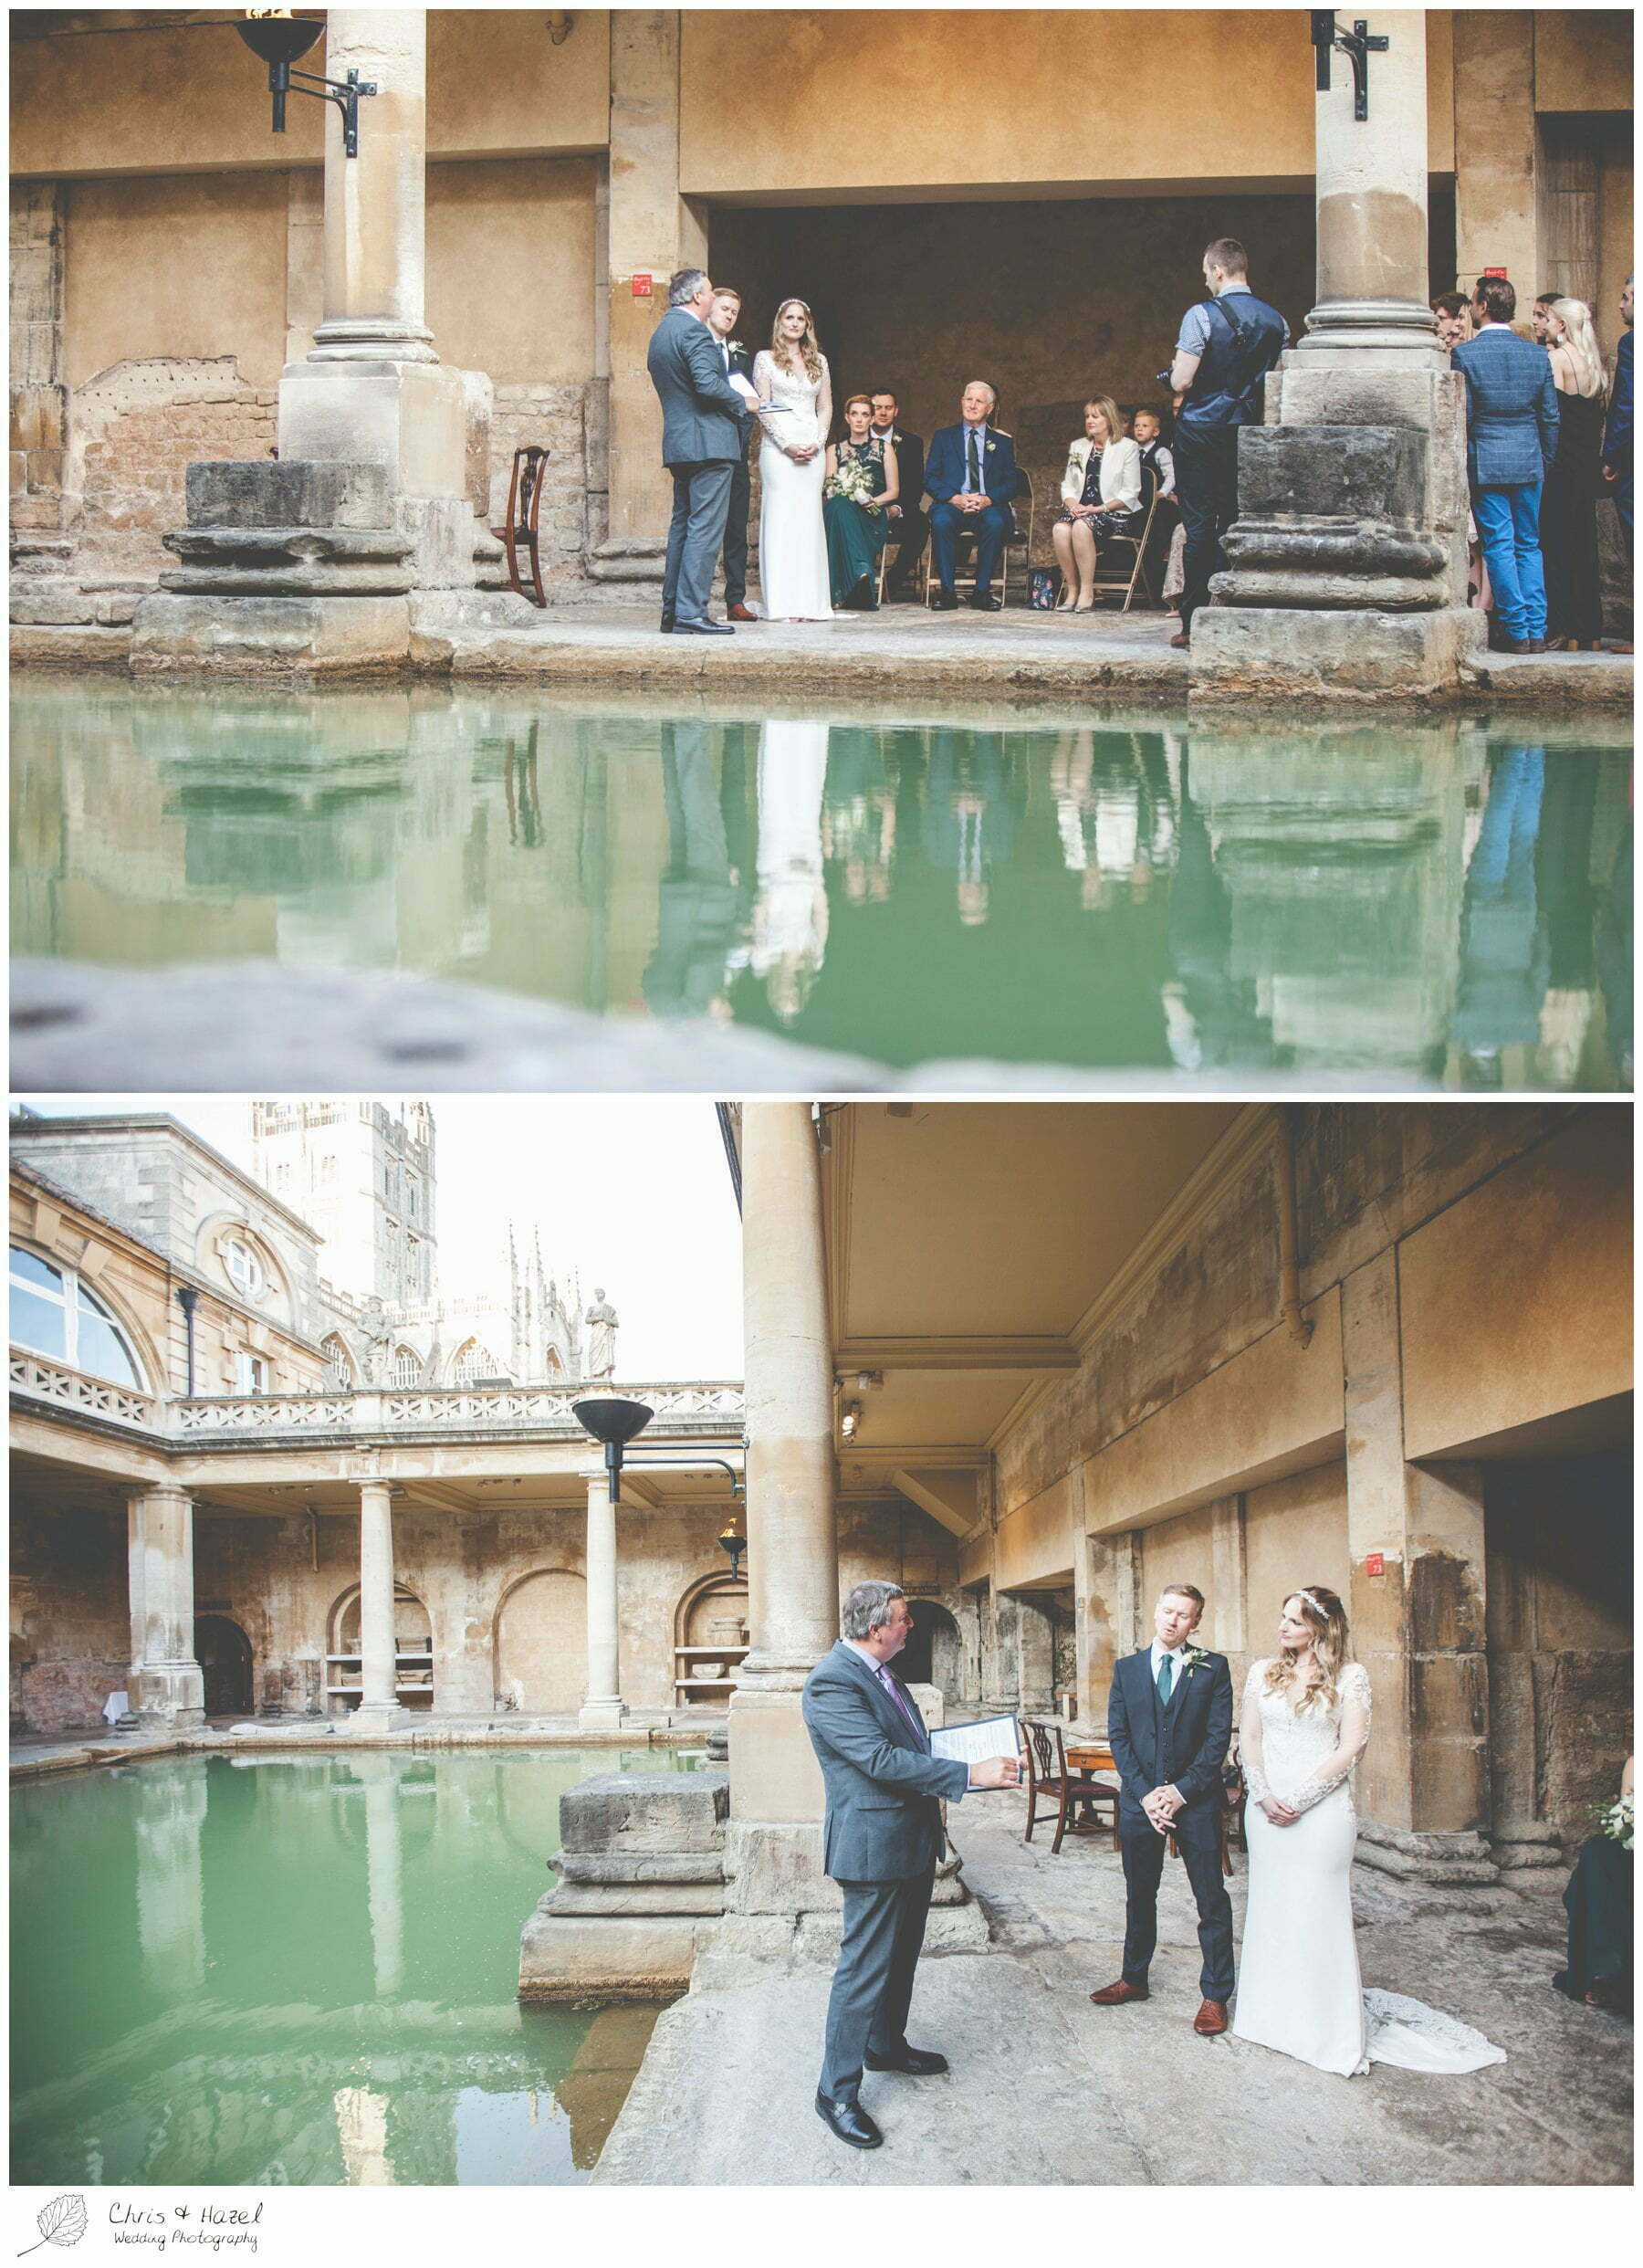 Bride and Groom Wedding Ceremony at Roman Baths Pump Rooms, Bath Abbey, The Roman Baths Wedding Photography, Roman Baths Wedding Photographer, Wedding in Bath, Bath Wedding Day, documentary wedding photography, Chris and Hazel Wedding Photography Bath, Andy Frost Sian Upson